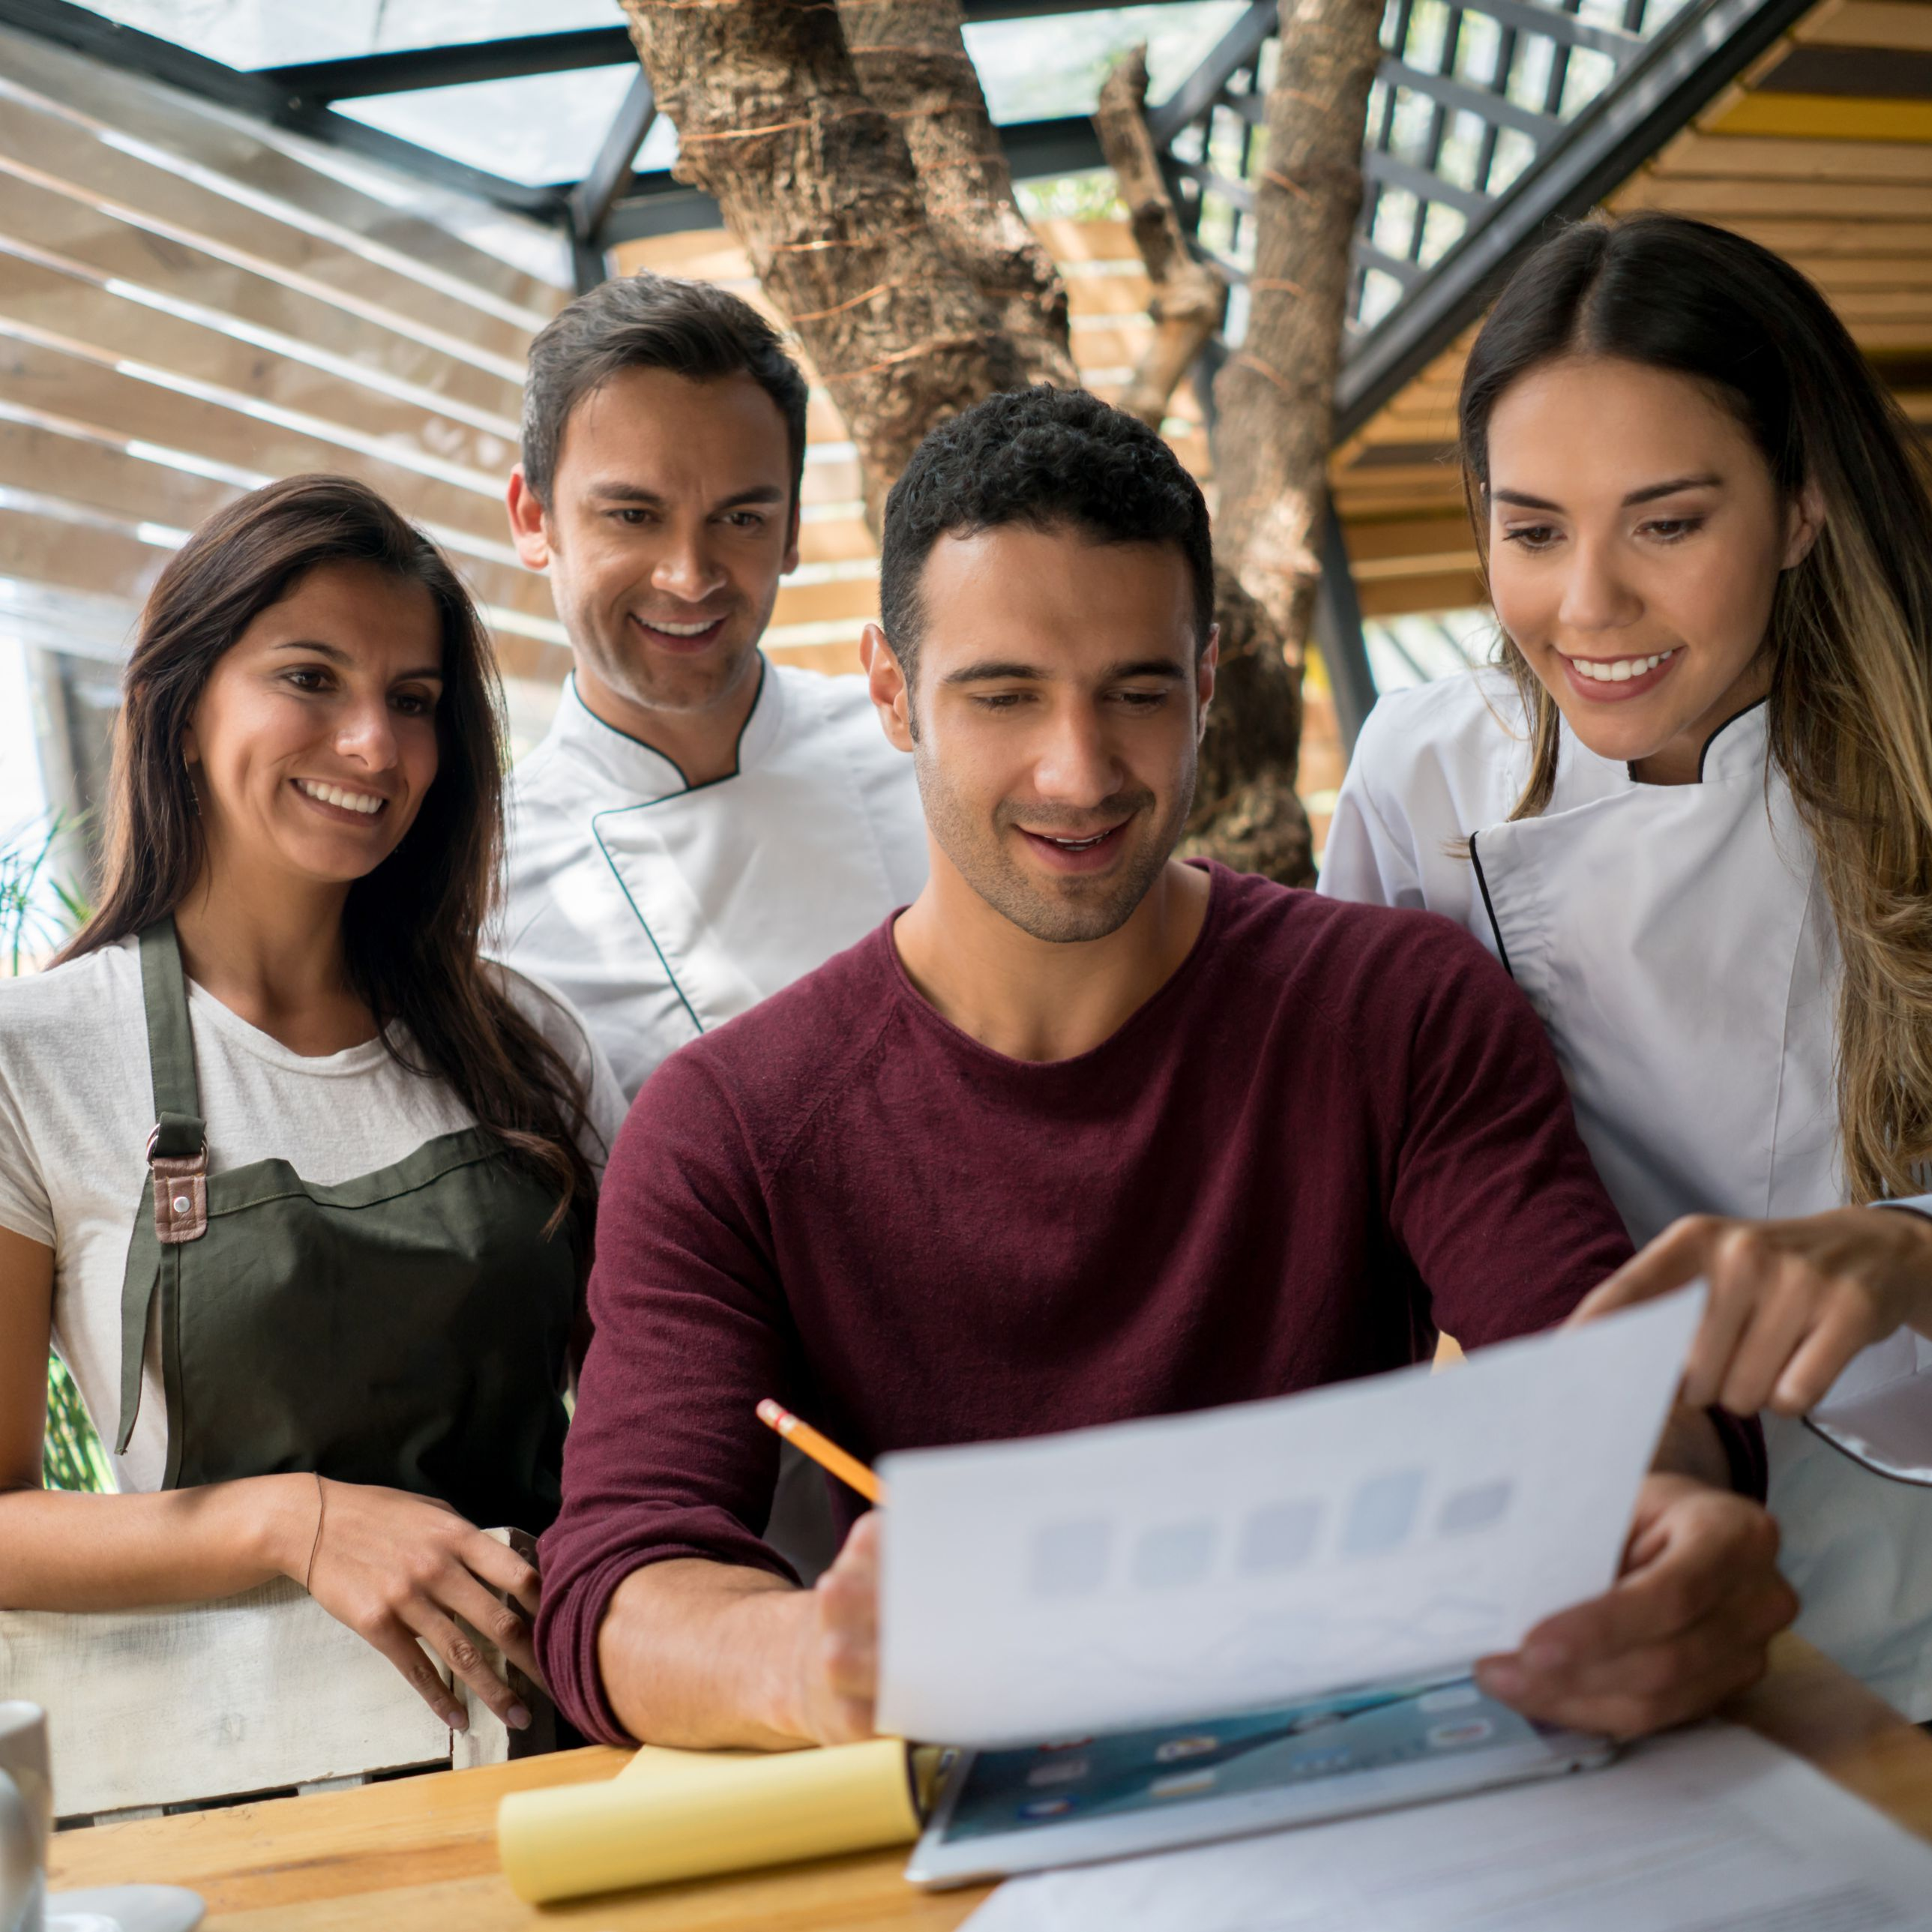 A Restaurant Chart of Accounts: Food, Assets and Expenses